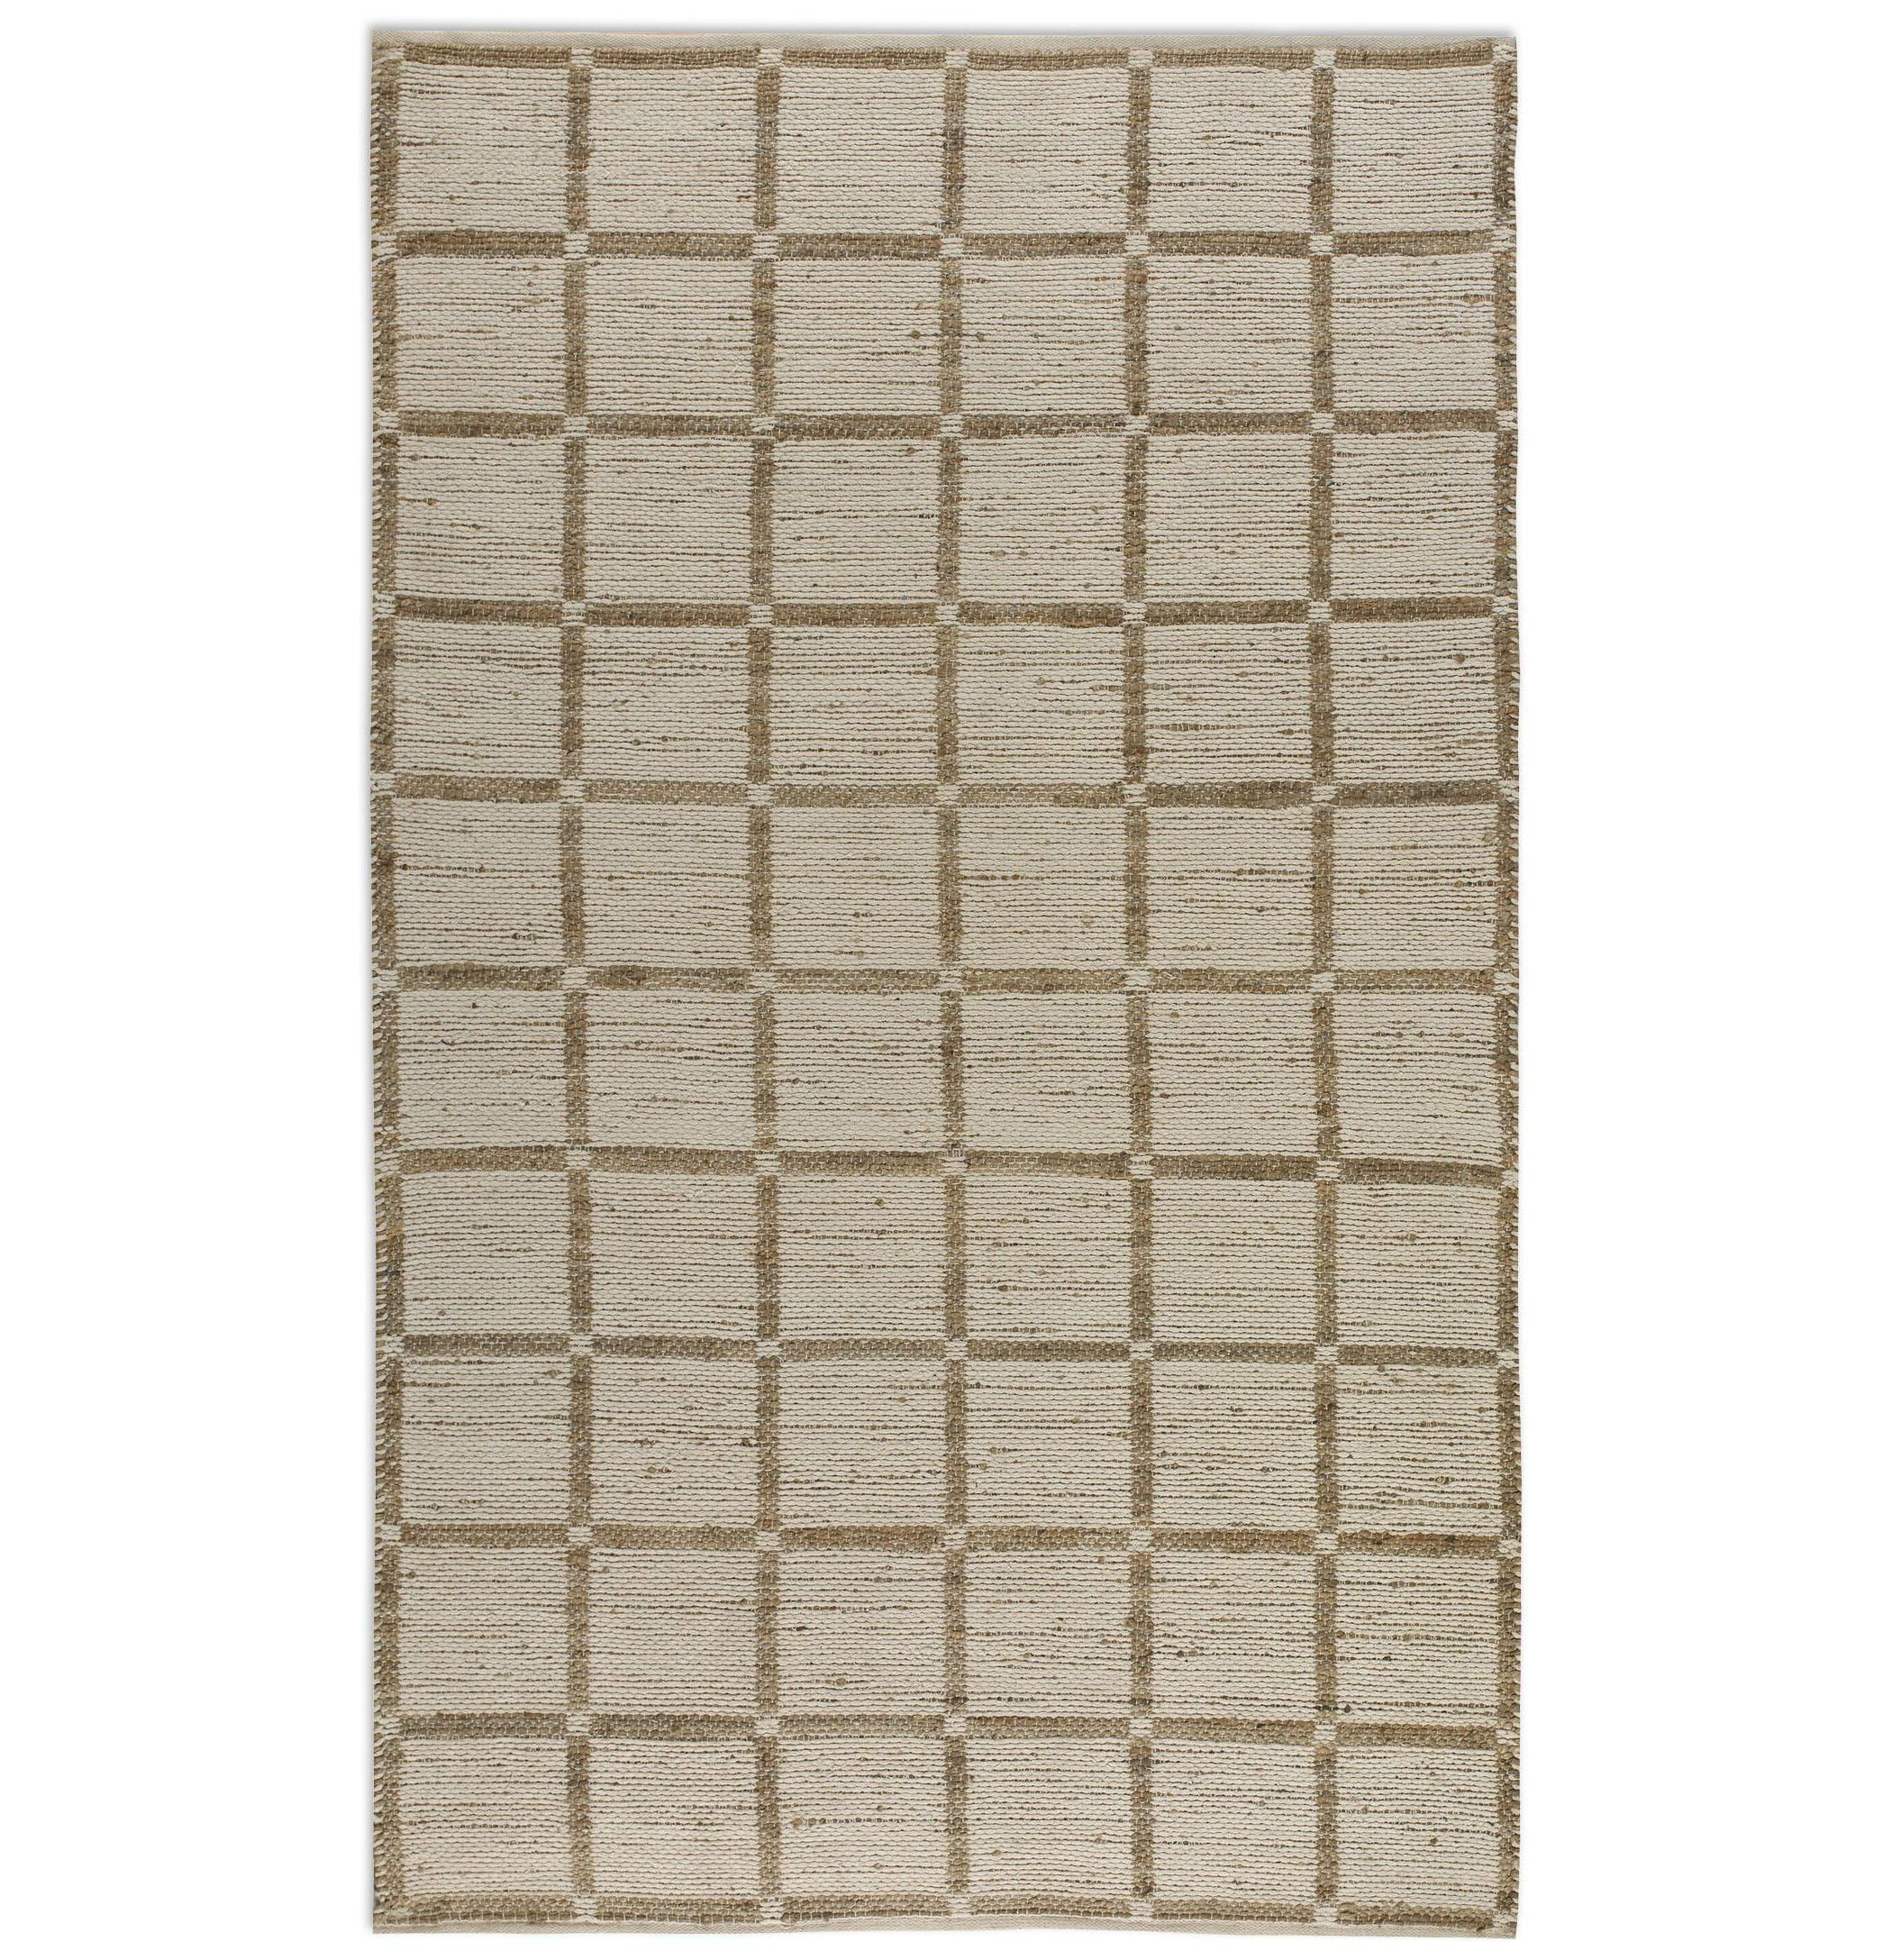 Uttermost Rugs Shahpur 8 X 10 Reversible Rug - Item Number: 71042-8